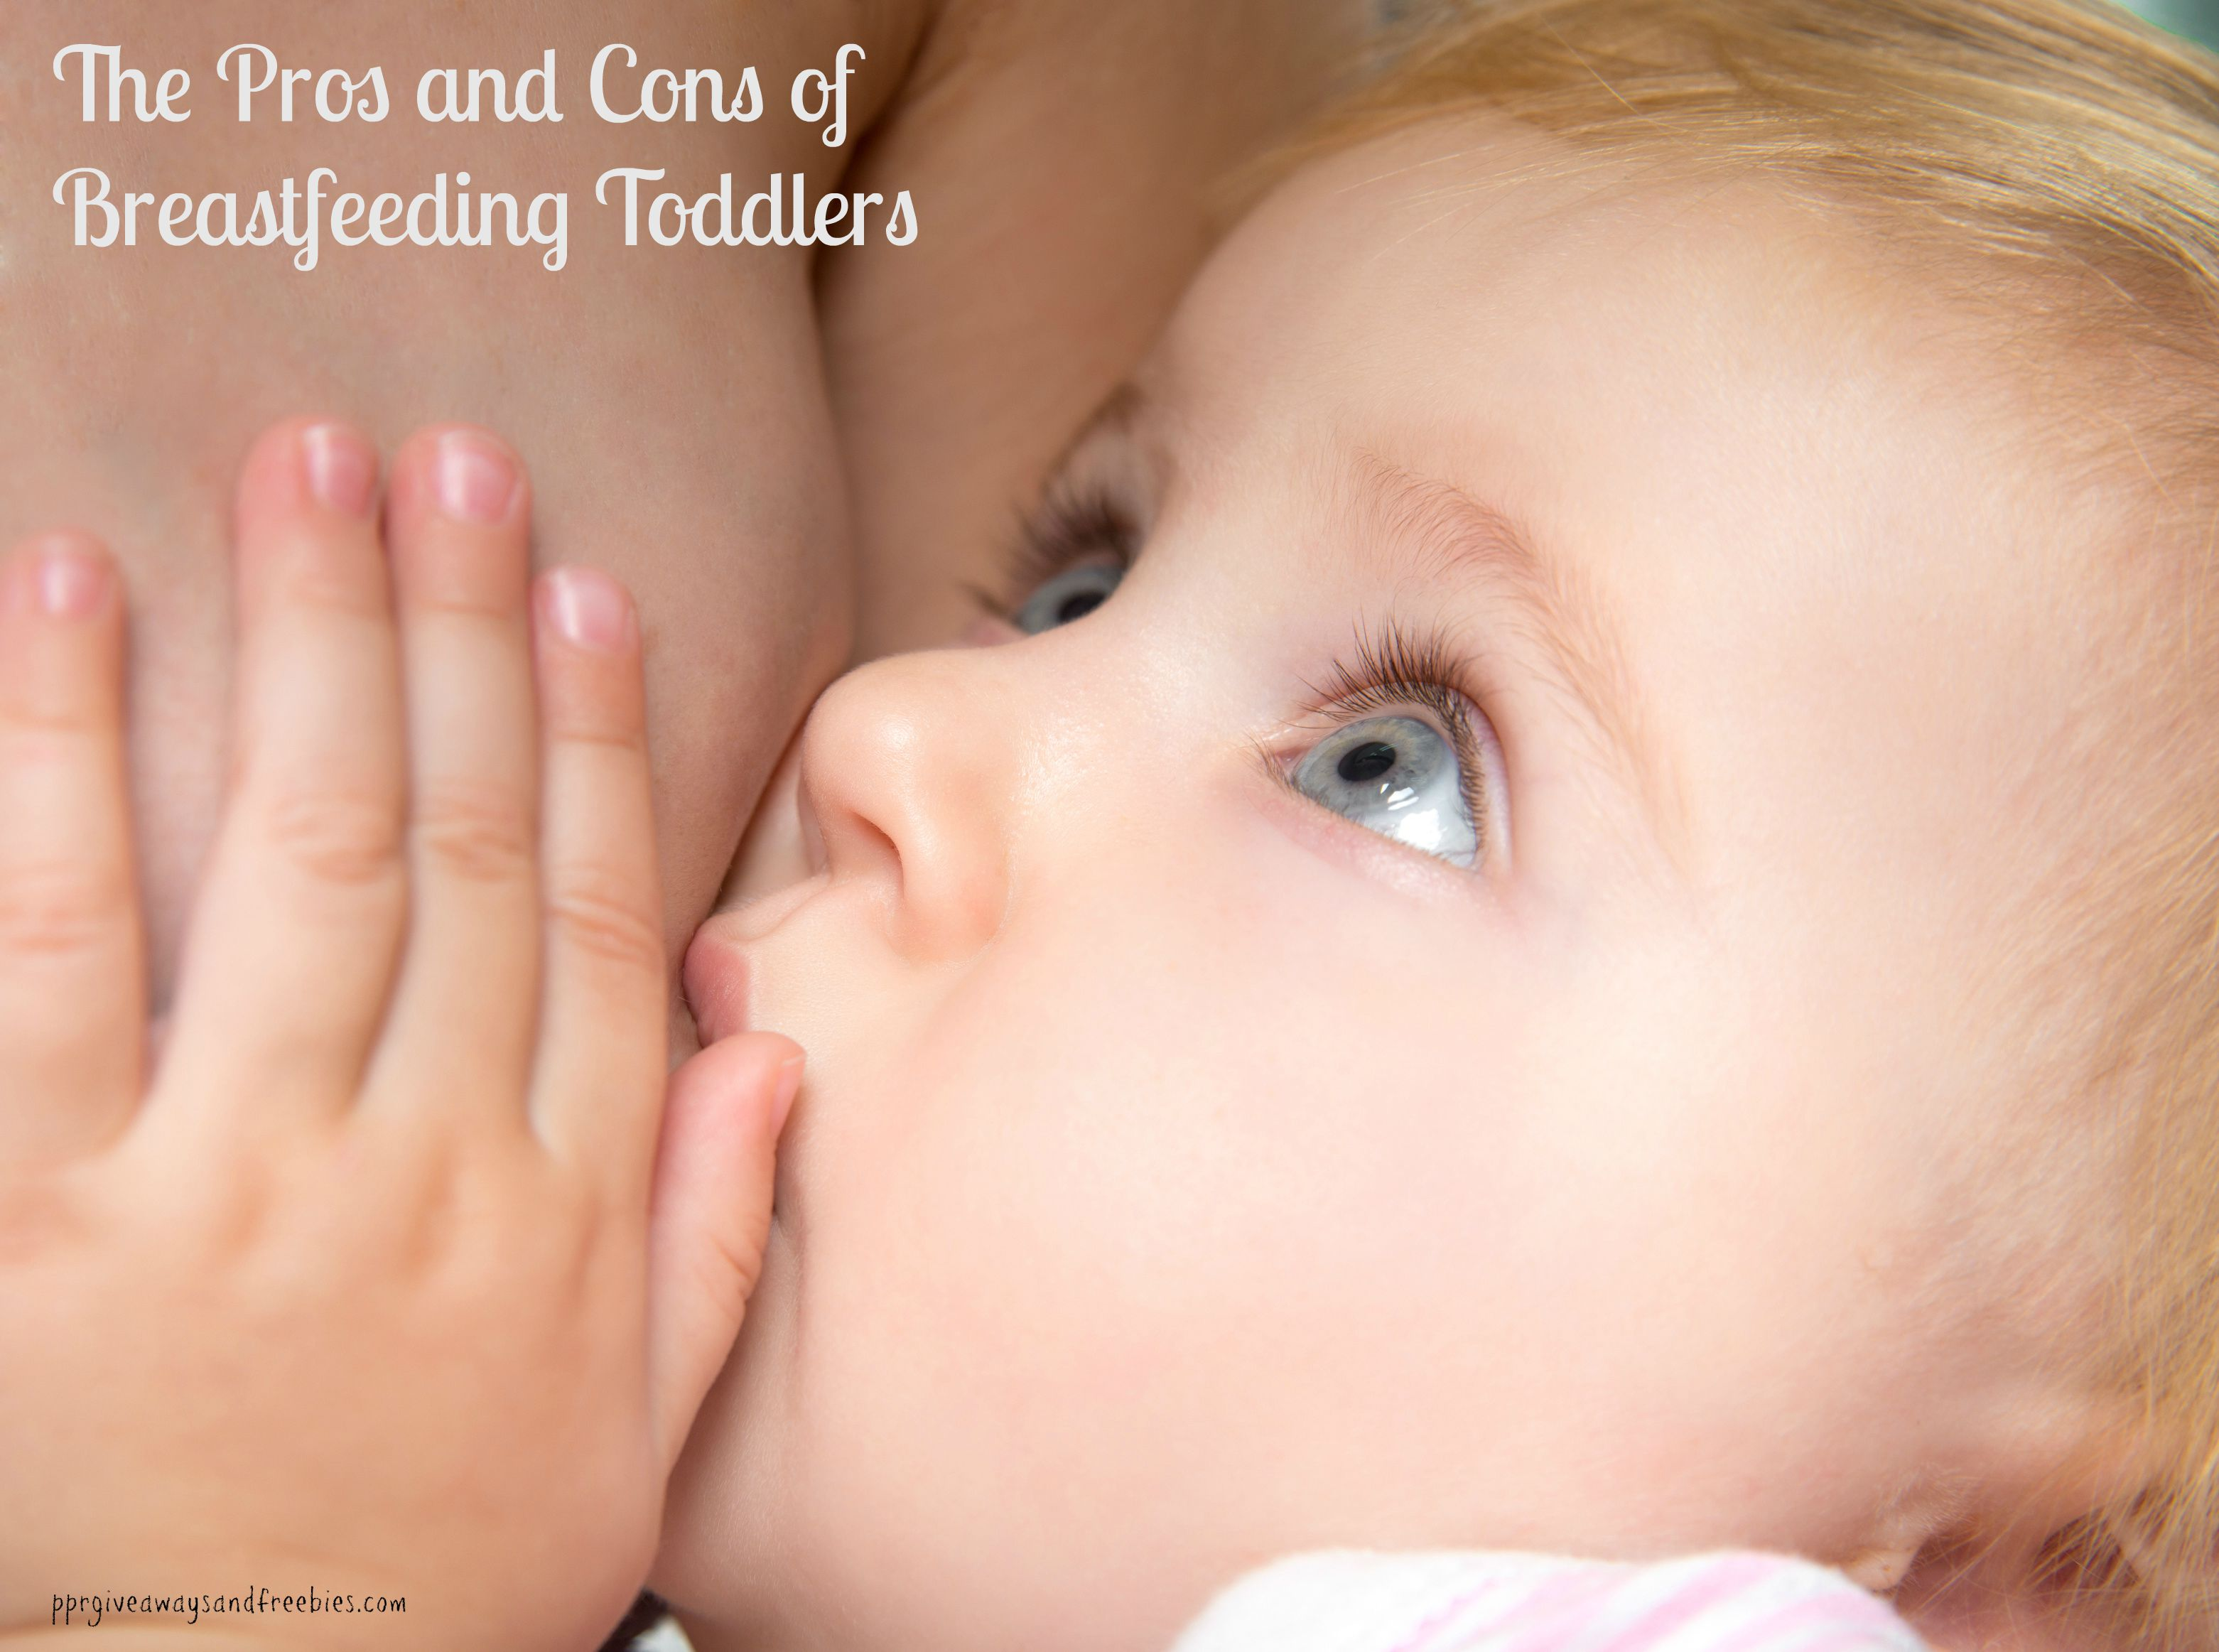 The Pros and Cons of Breastfeeding Toddlers